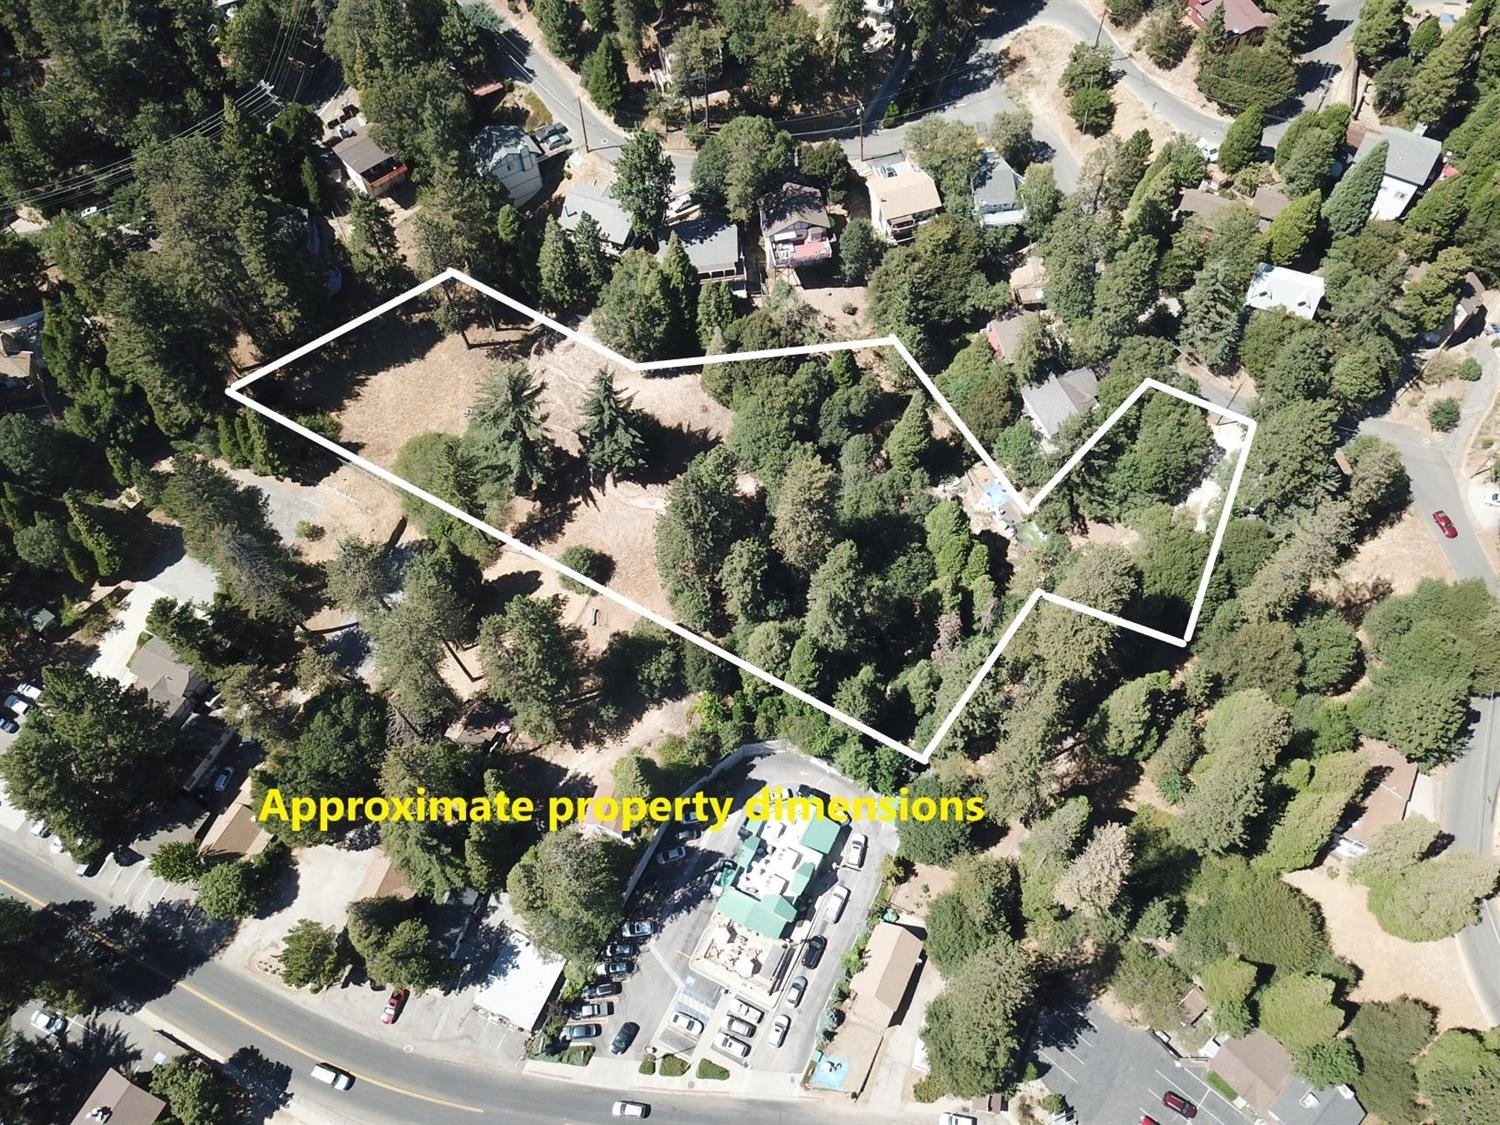 0 Zurich Drive Property Photo - Crestline, CA real estate listing